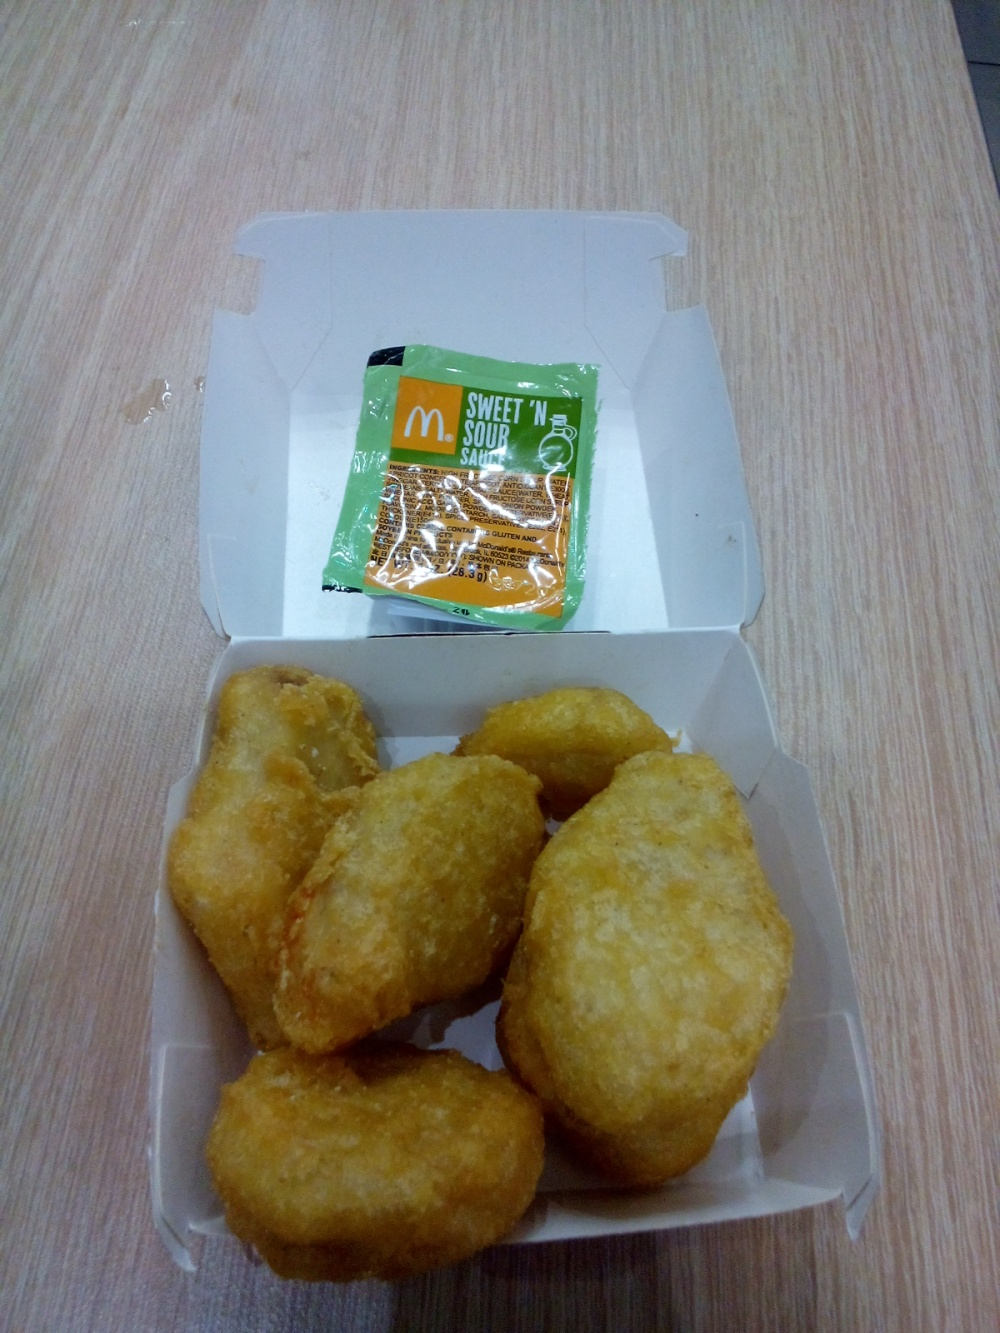 My boyfriend loves Mcdonald's thus we ate this as soon as we arrived.